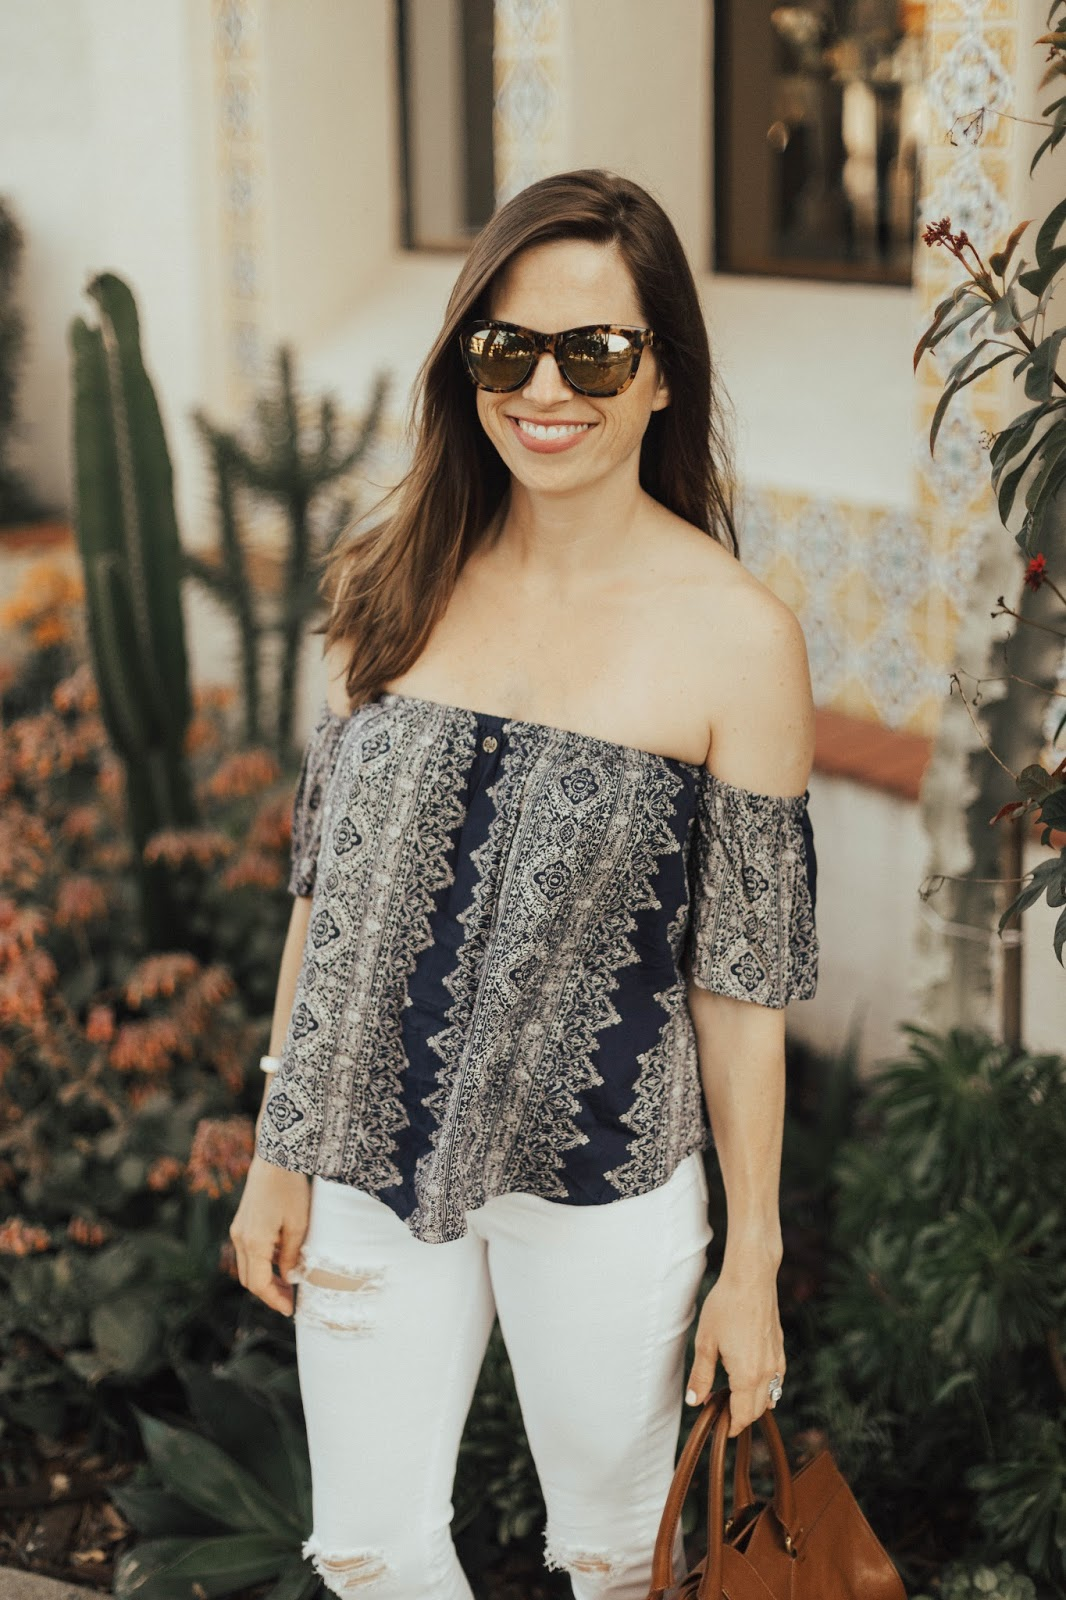 off the shoulder top and mirrored sunglasses